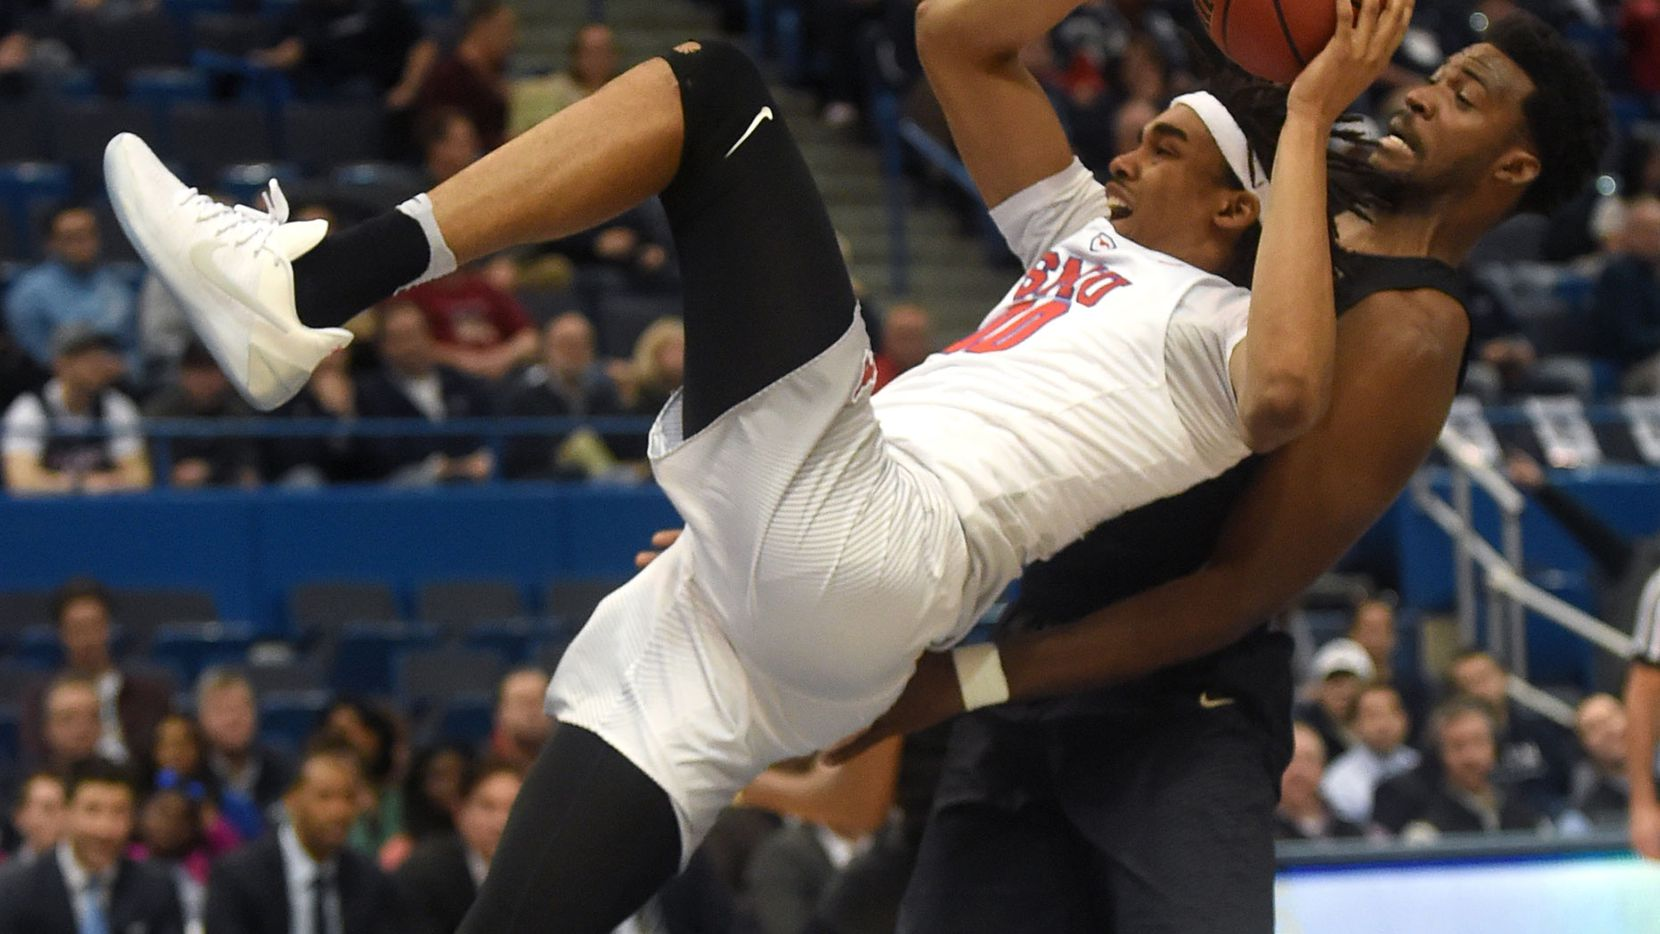 Southern Methodist's Ben Moore (00) tries to gather his feet in front of Central Florida's Chad Brown in the semifinals of the AAC Tournament at XL Center in Hartford, Conn., on Saturday, March 11, 2017. SMU advanced, 70-59. (Brad Horrigan/Hartford Courant/TNS)